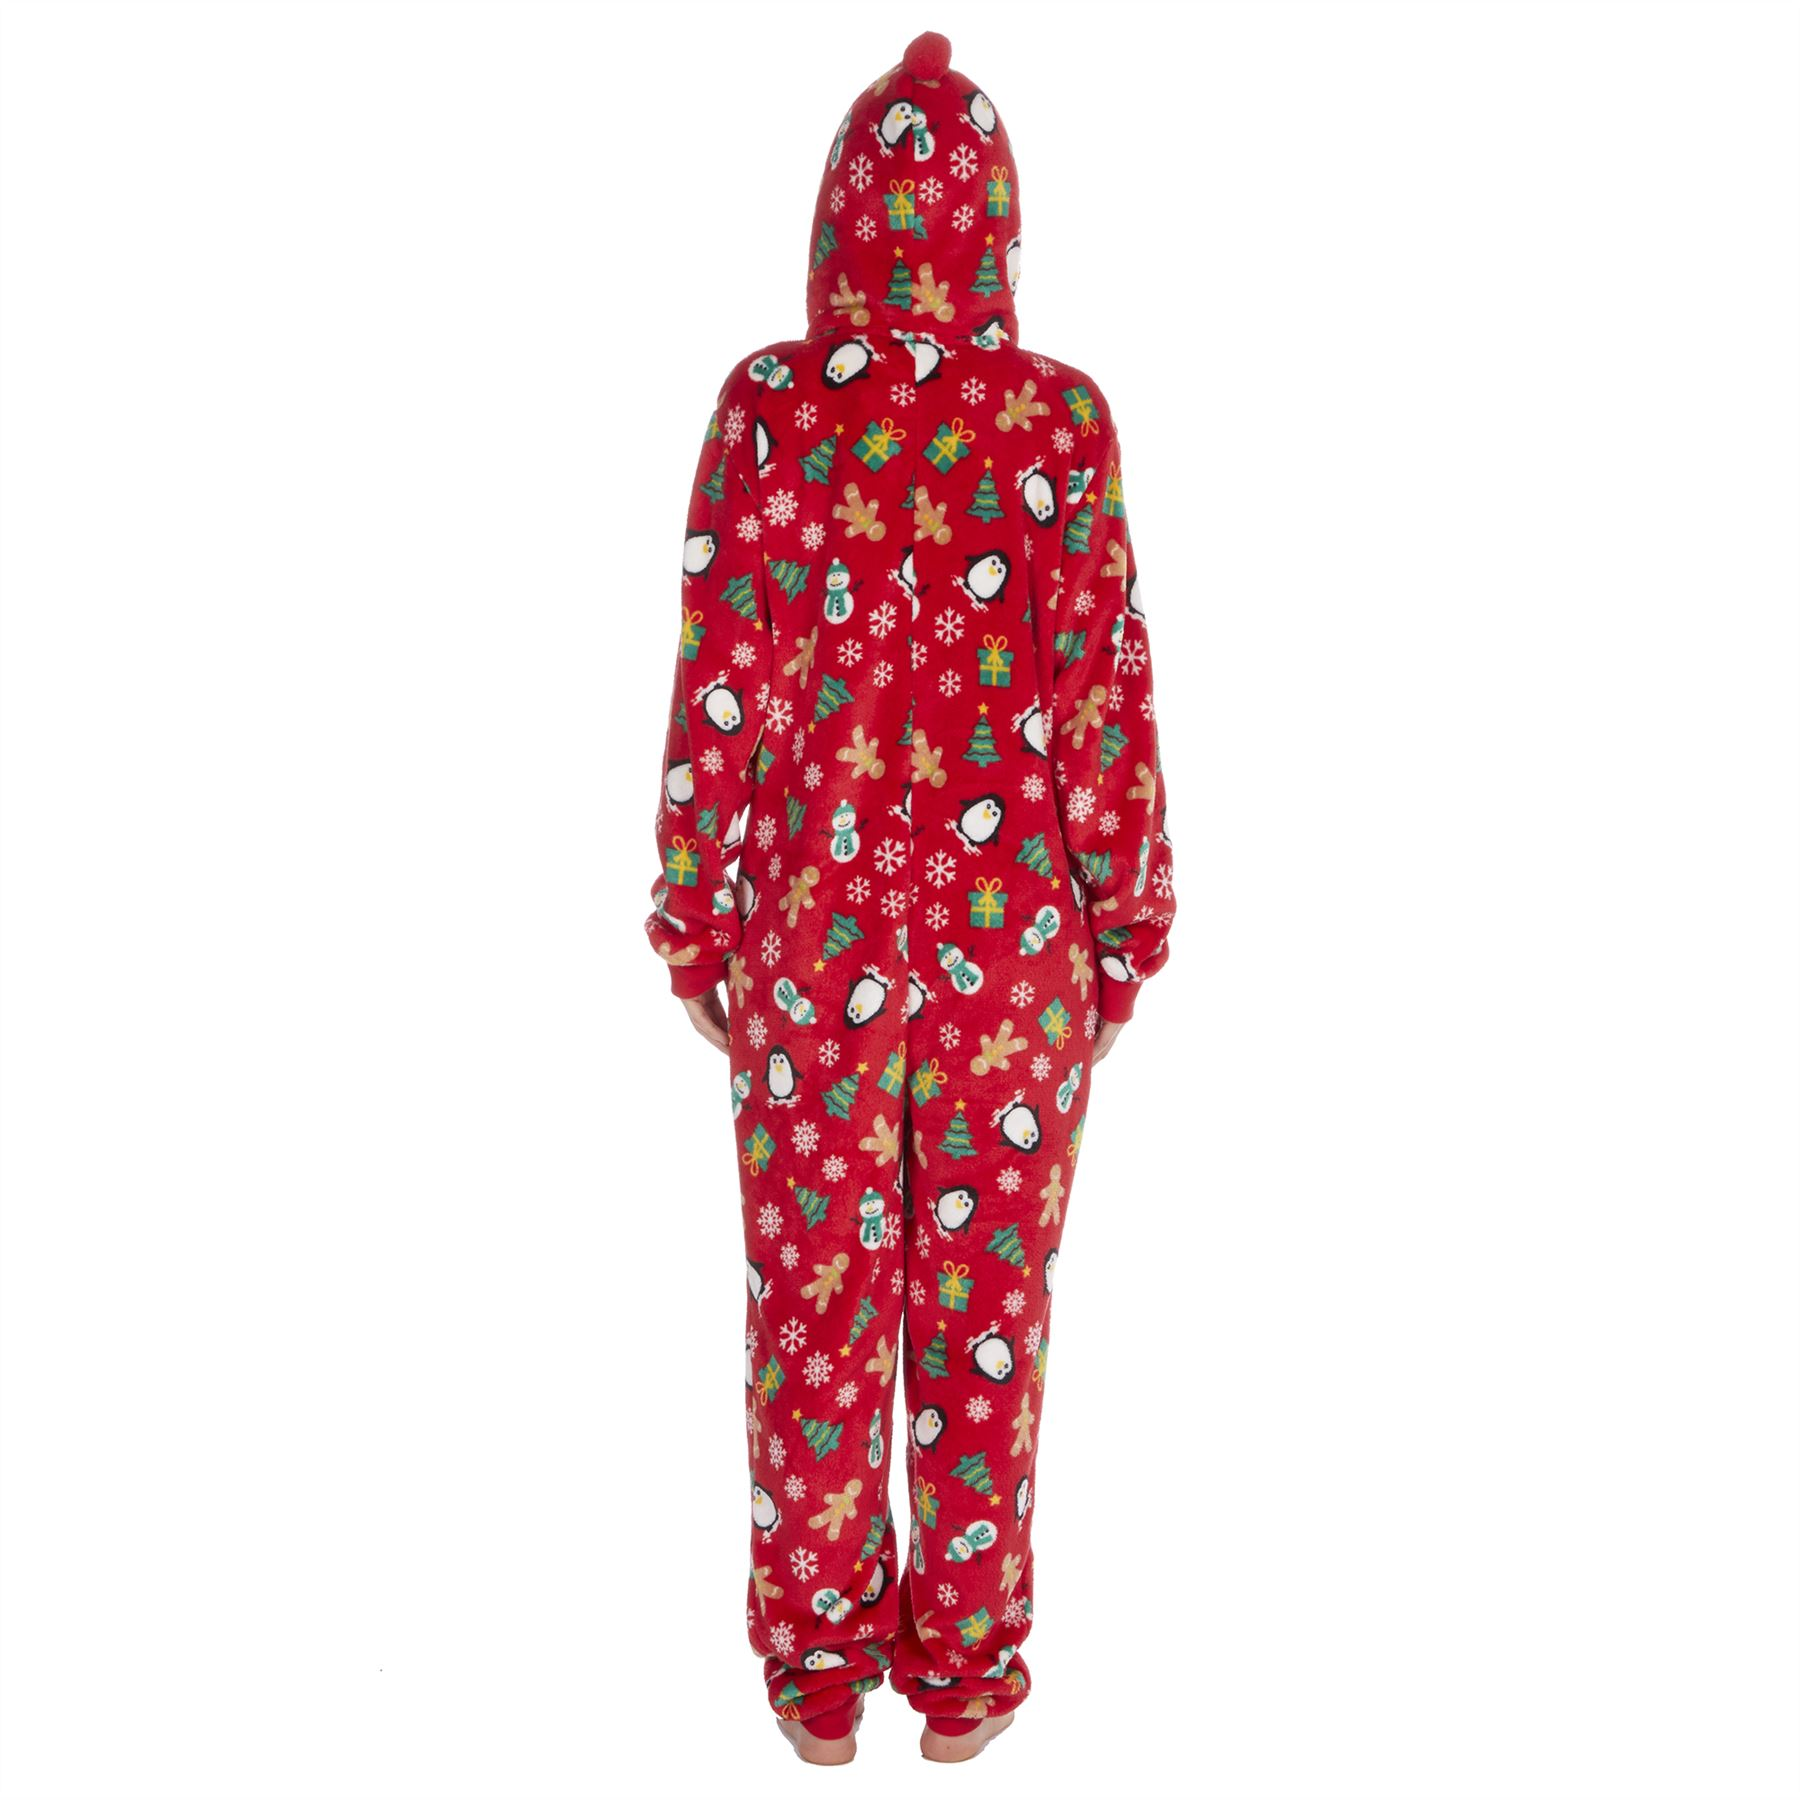 Ladies-Womens-Girls-Fleece-All-In-One-Pyjamas-Outfit-Jumpsuit-Costume-Size-6-18 thumbnail 53